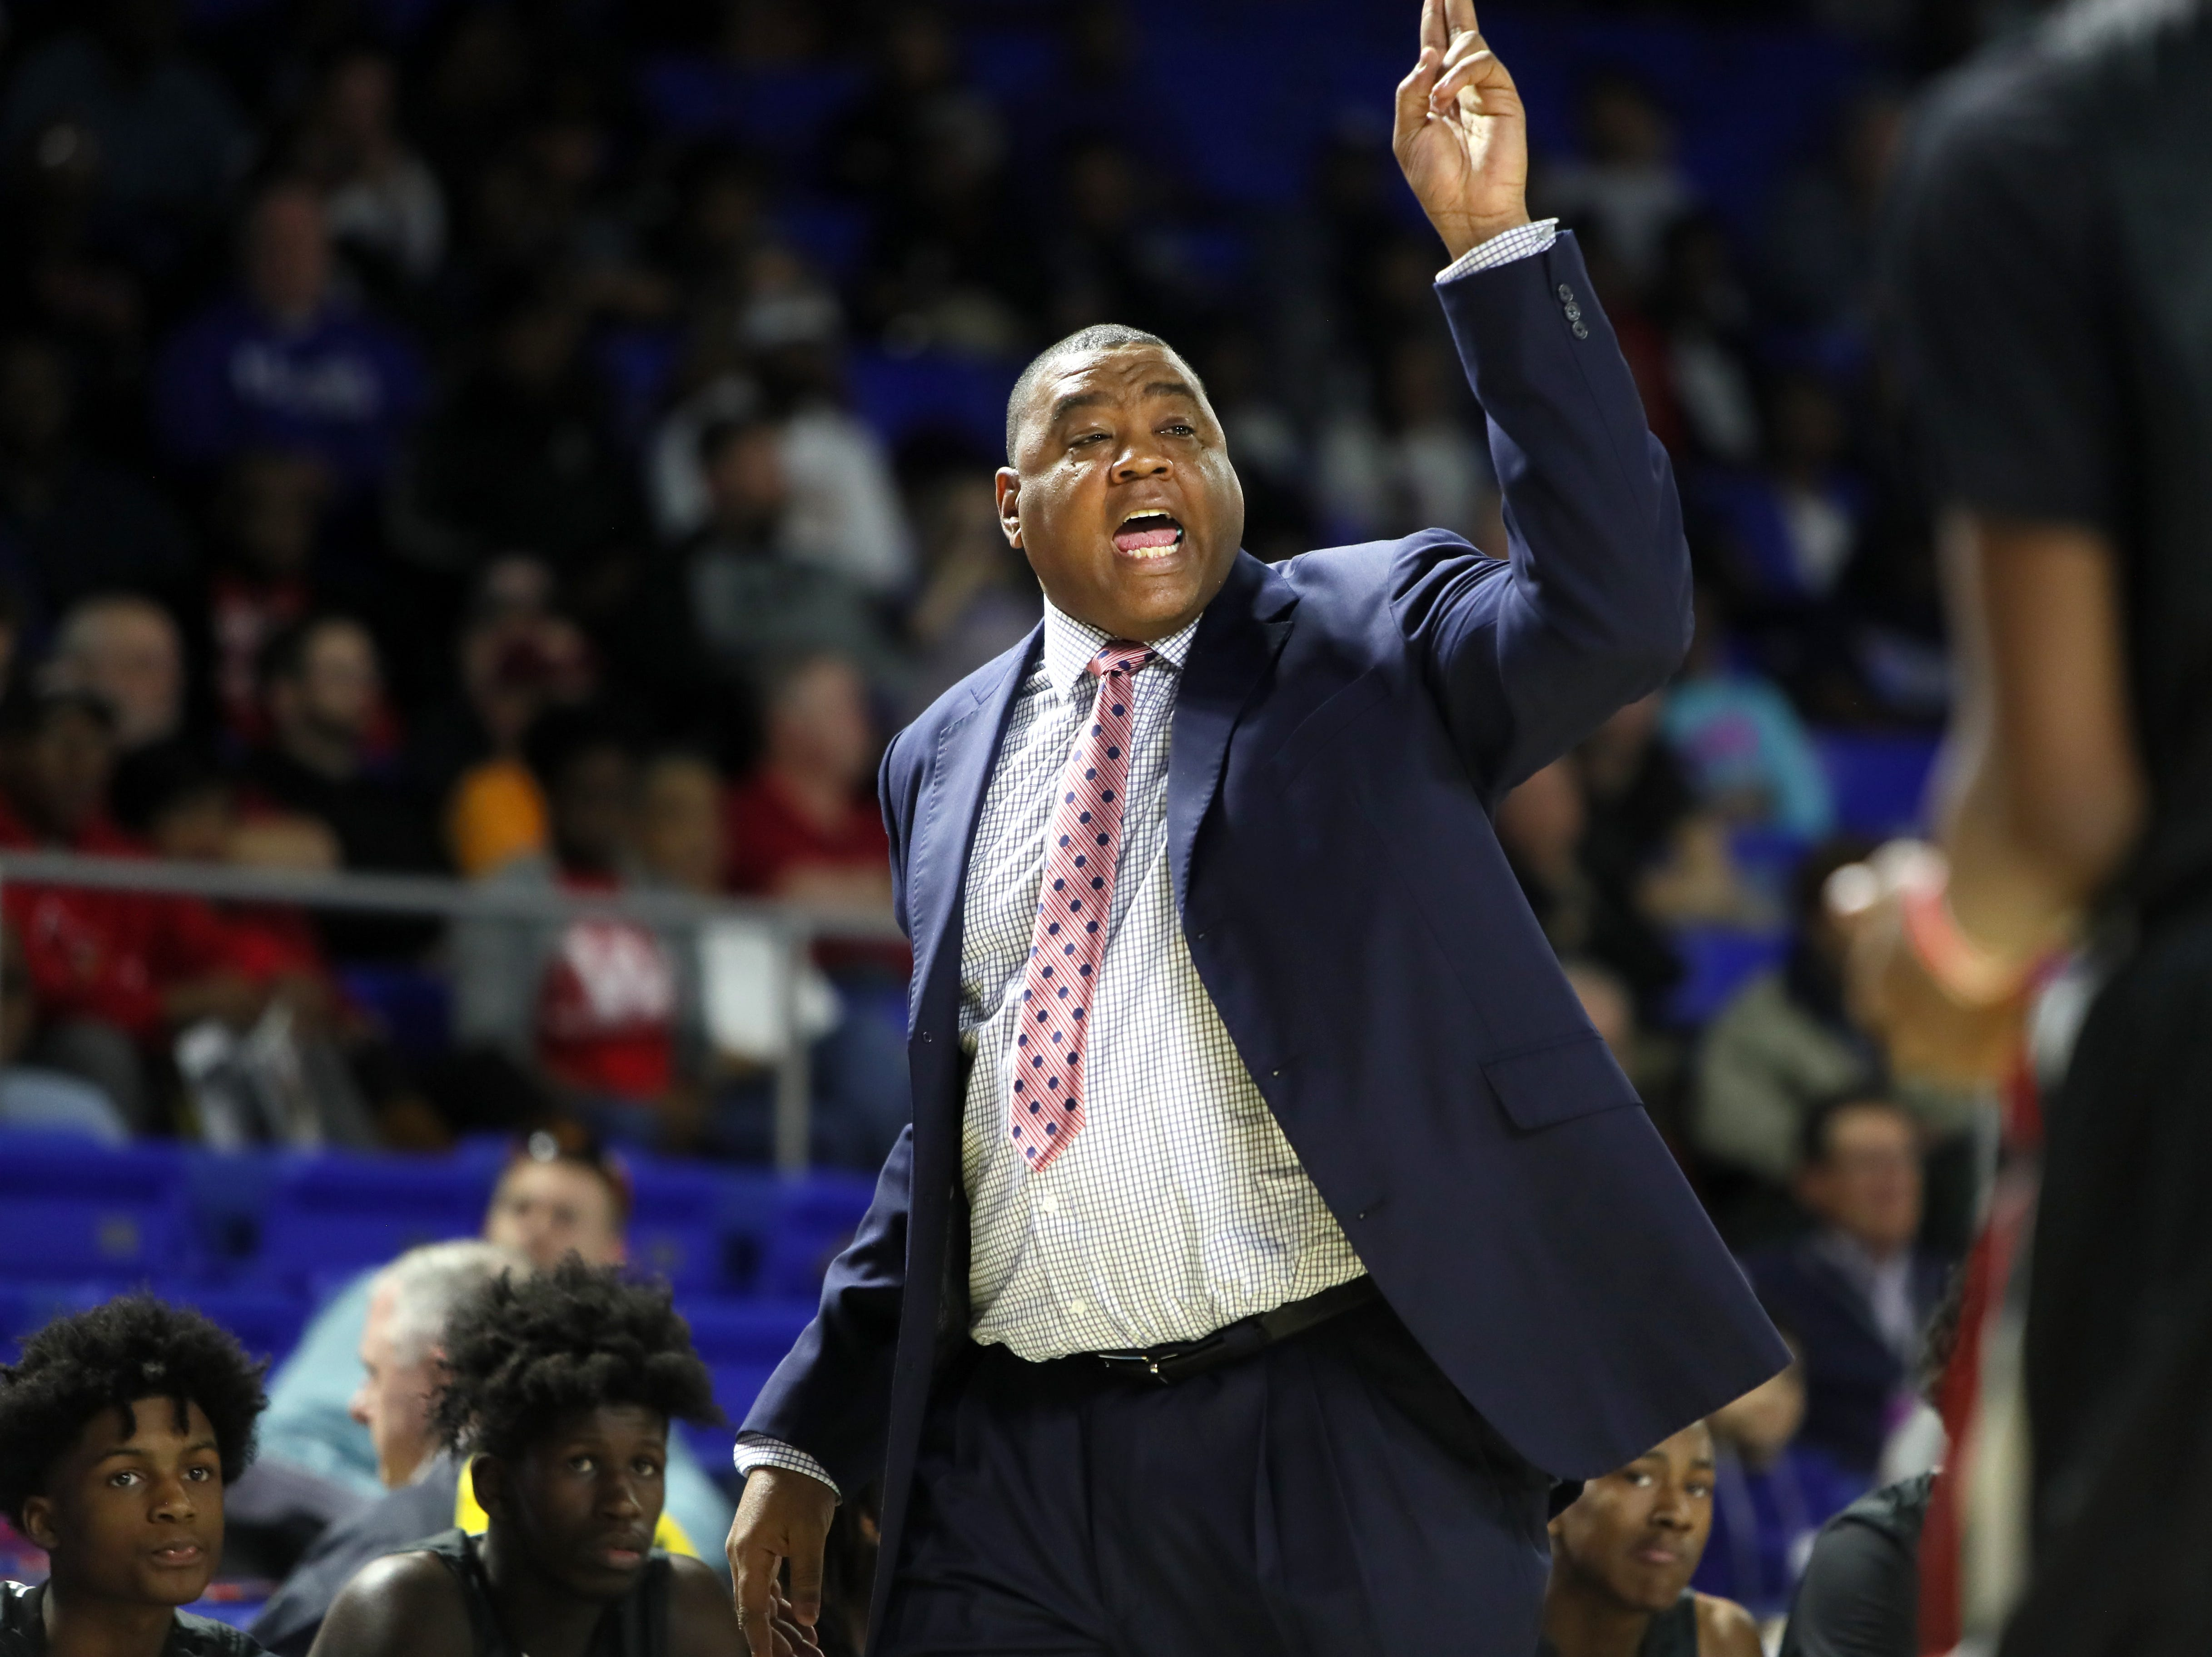 Wooddale Head Coach Keelon Lawson yells out to his team as they take on Fulton during the Class AA boys basketball state championship game at the Murphy Center in Murfreesboro, Tenn. on Saturday, March 16, 2019.